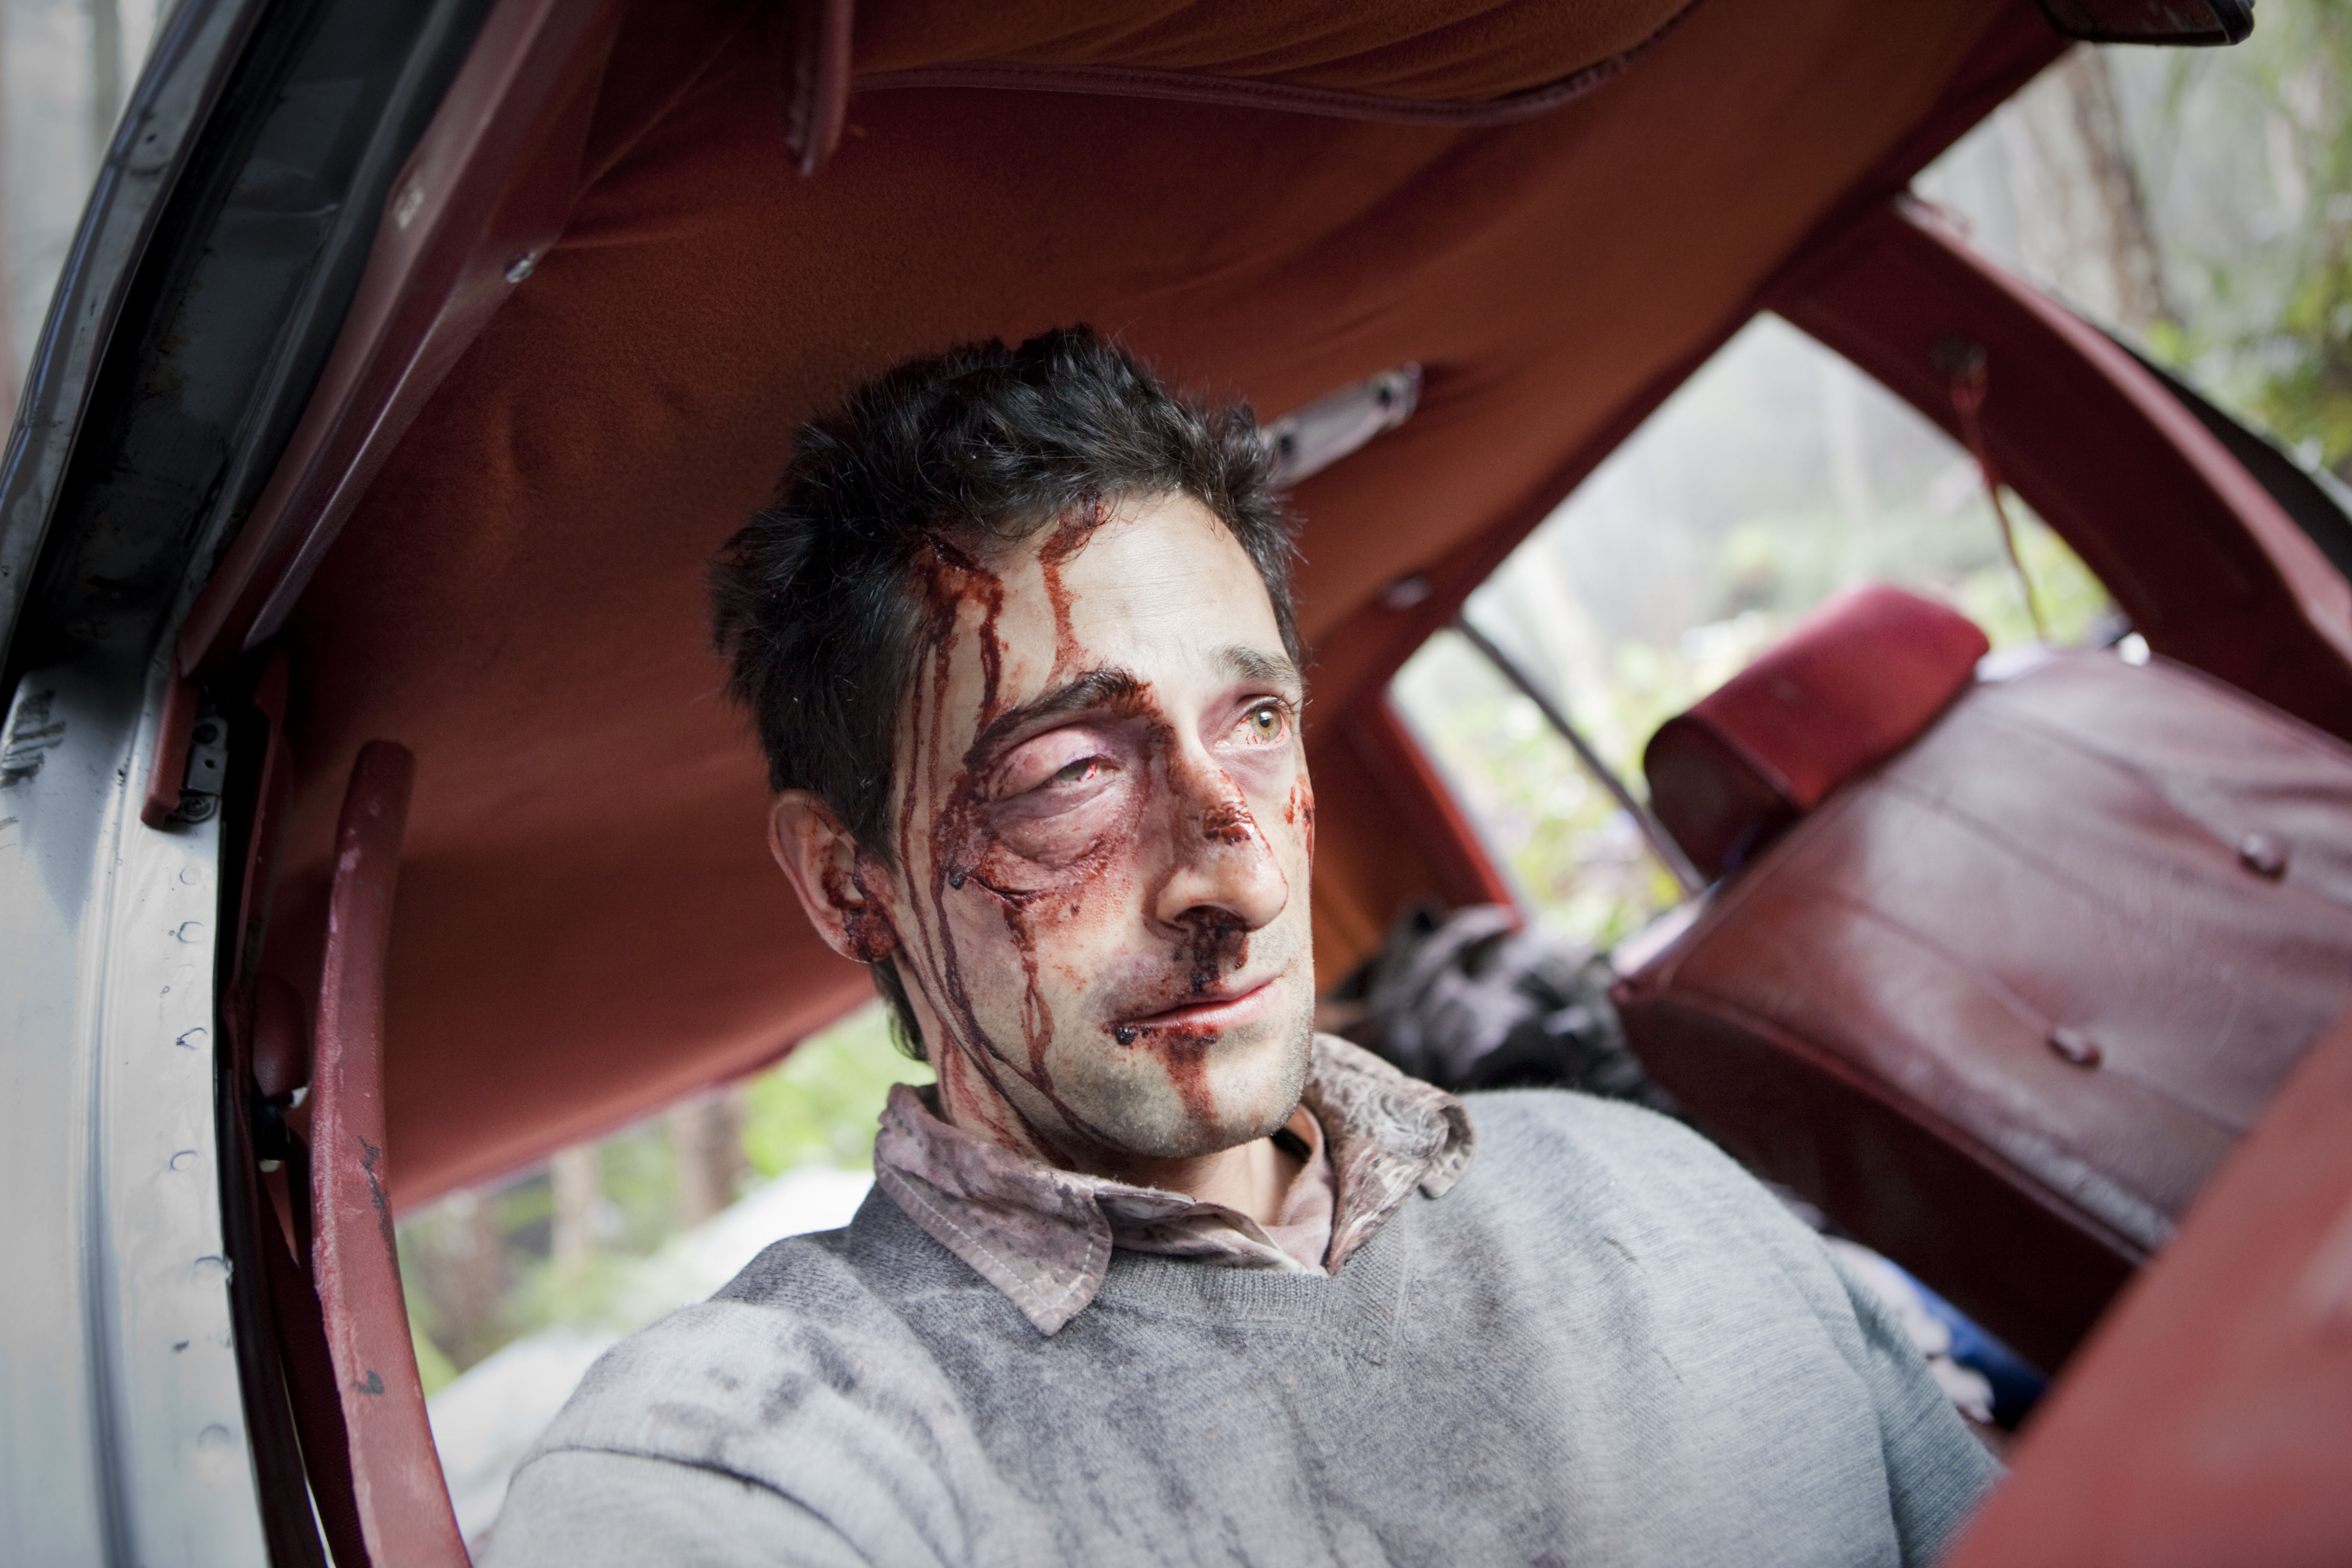 An image from Wrecked